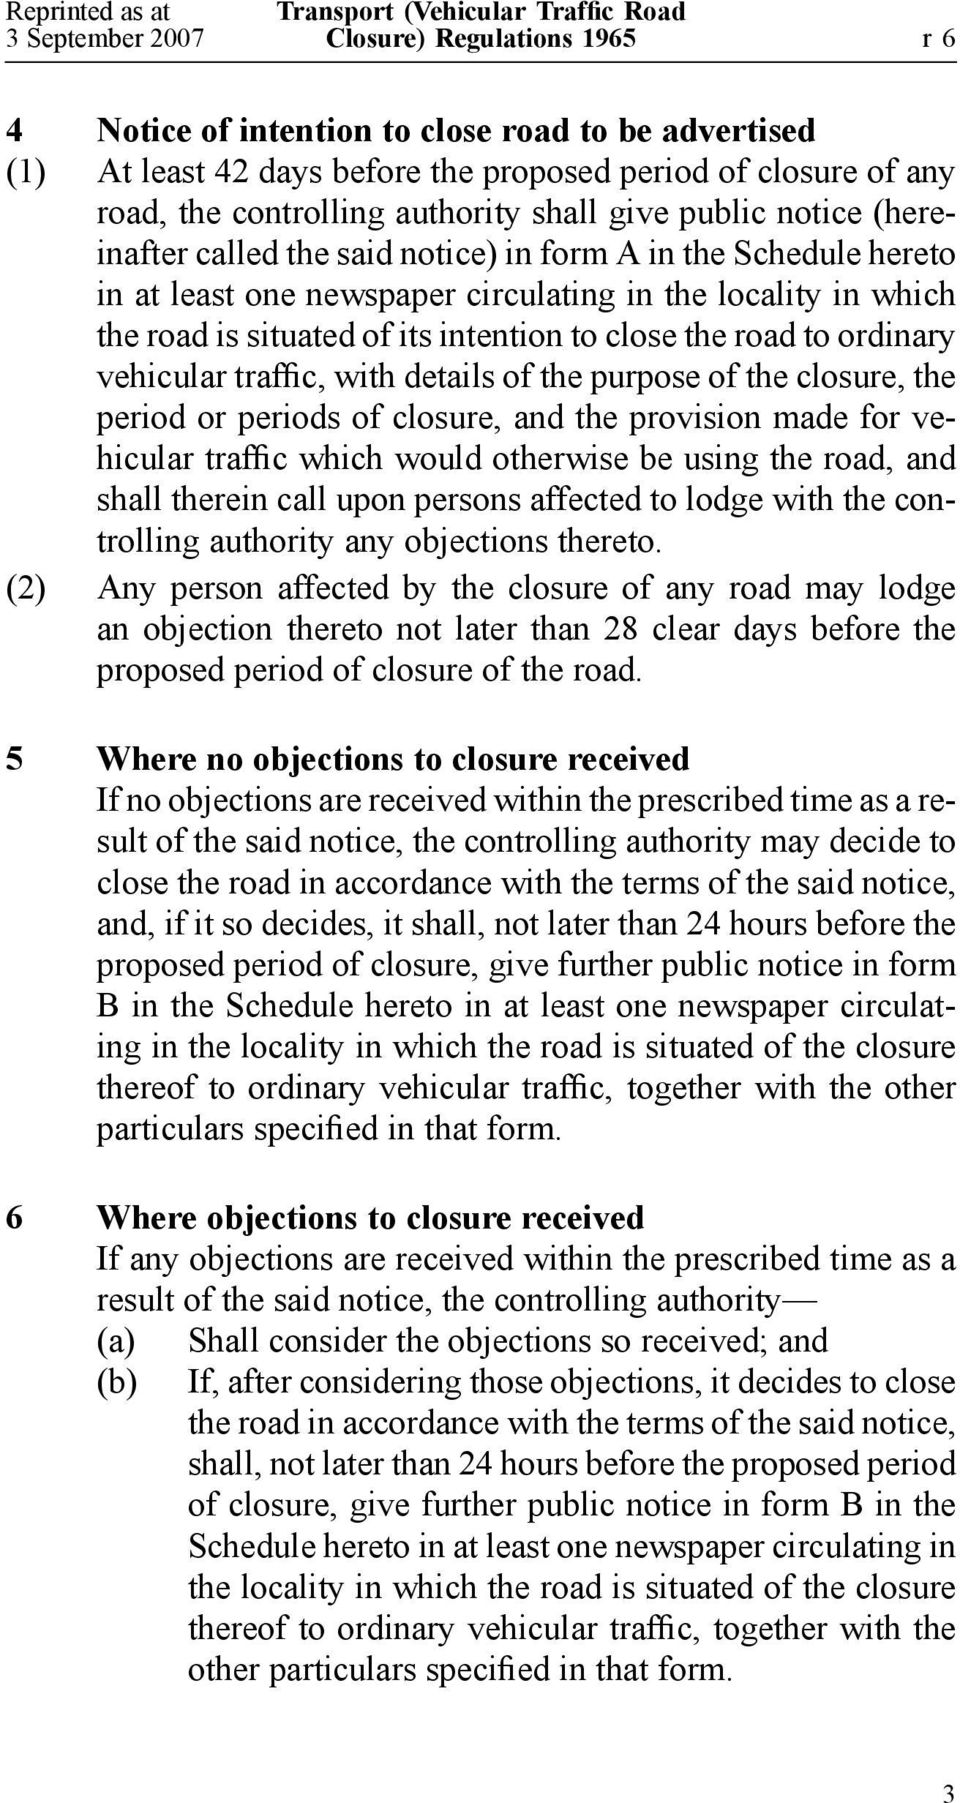 ordinary vehicular traffic, with details of the purpose of the closure, the period or periods of closure, and the provision made for vehicular traffic which would otherwise be using the road, and